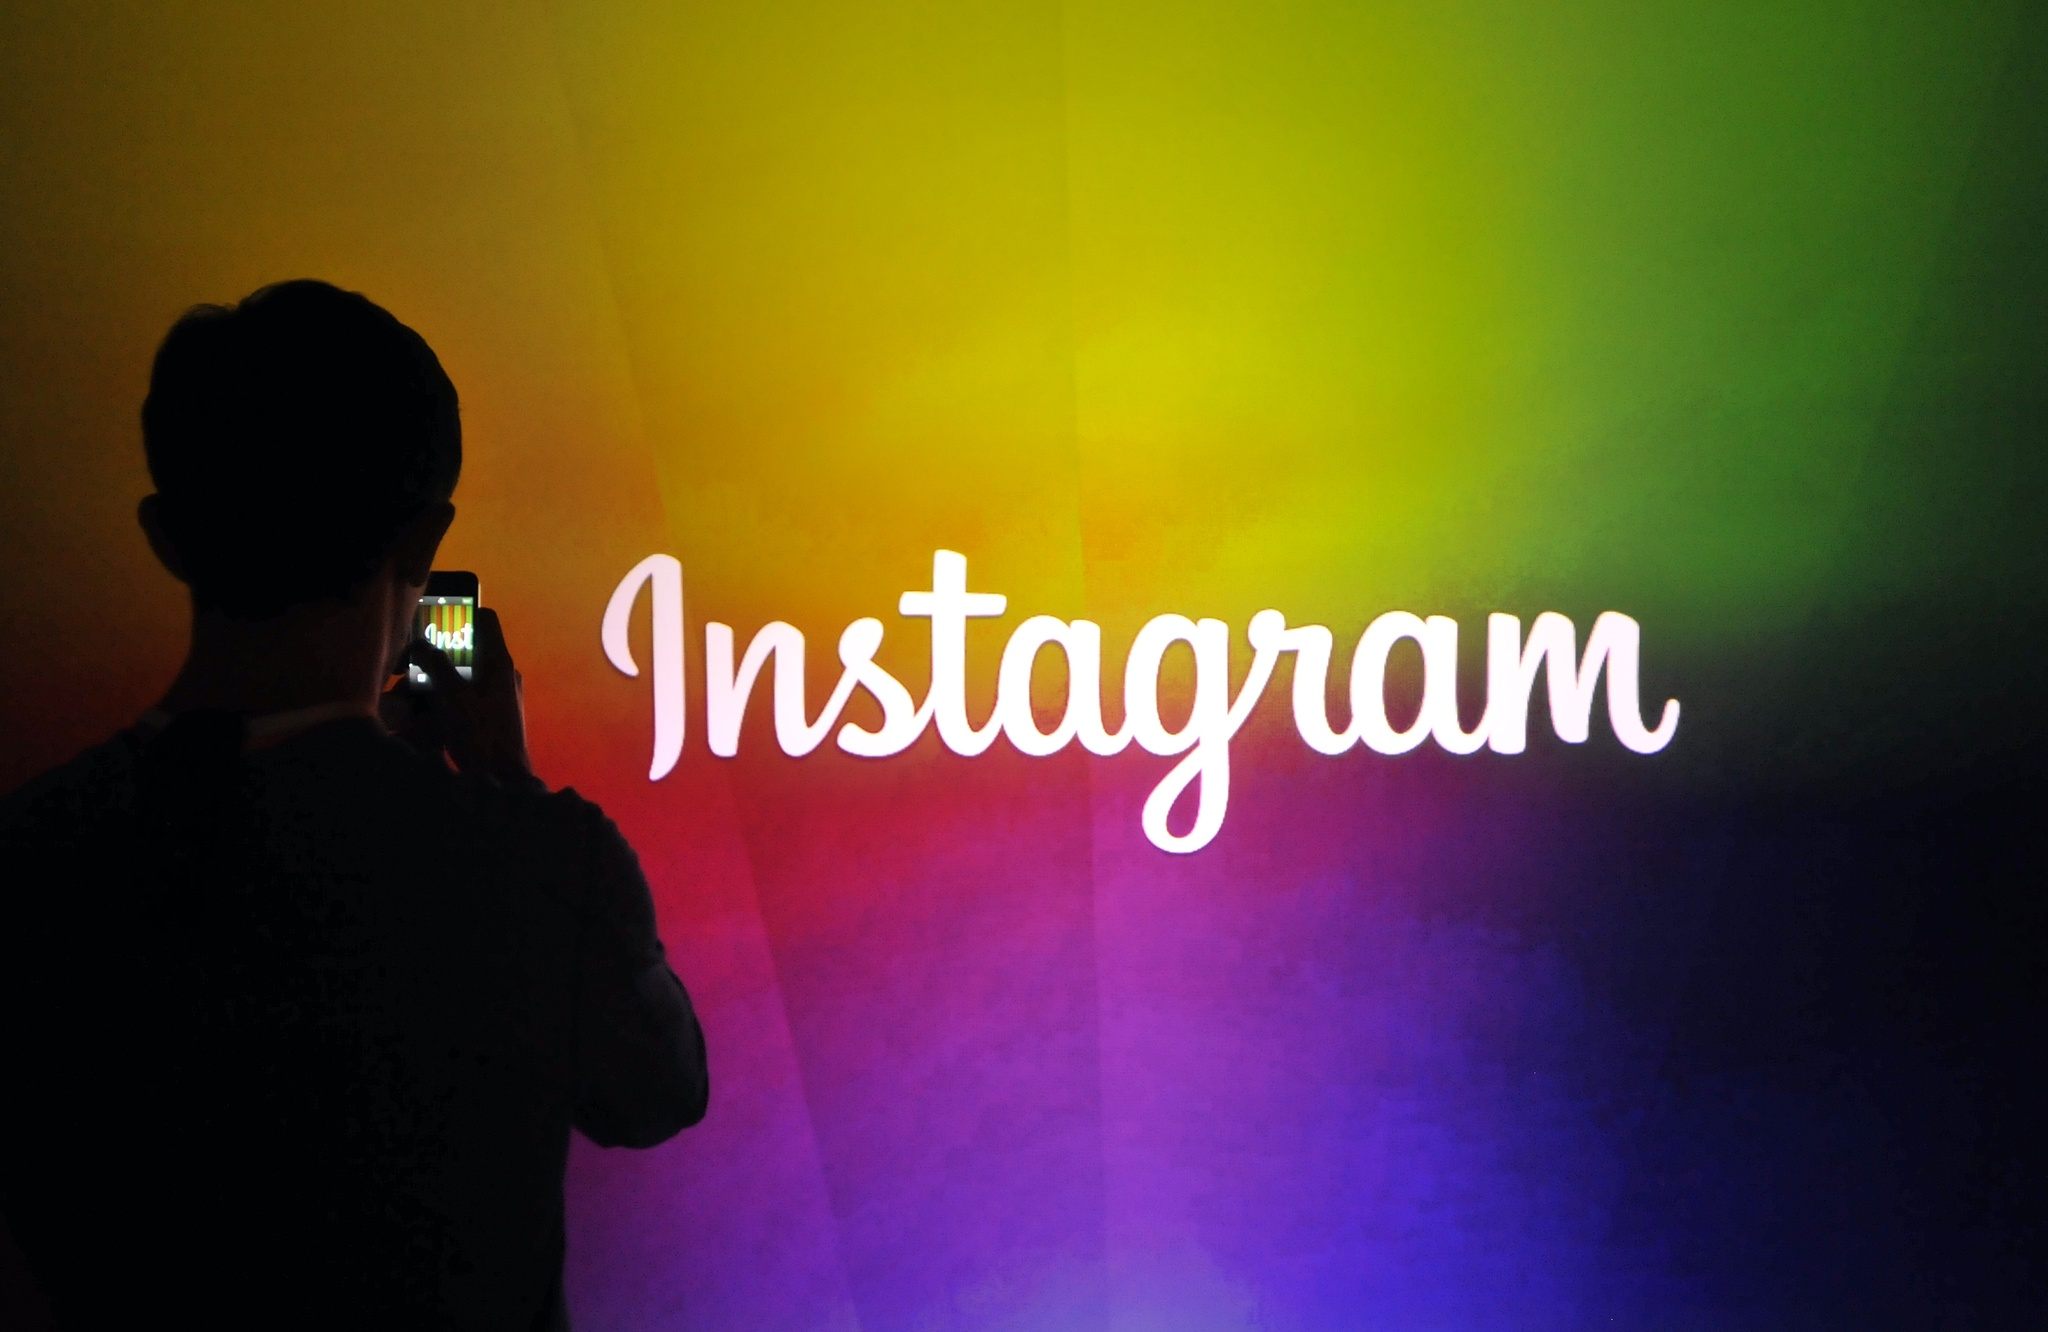 Instagram Will Now Enable Businesses to Schedule Posts via Third Party Tools | Social Media Today